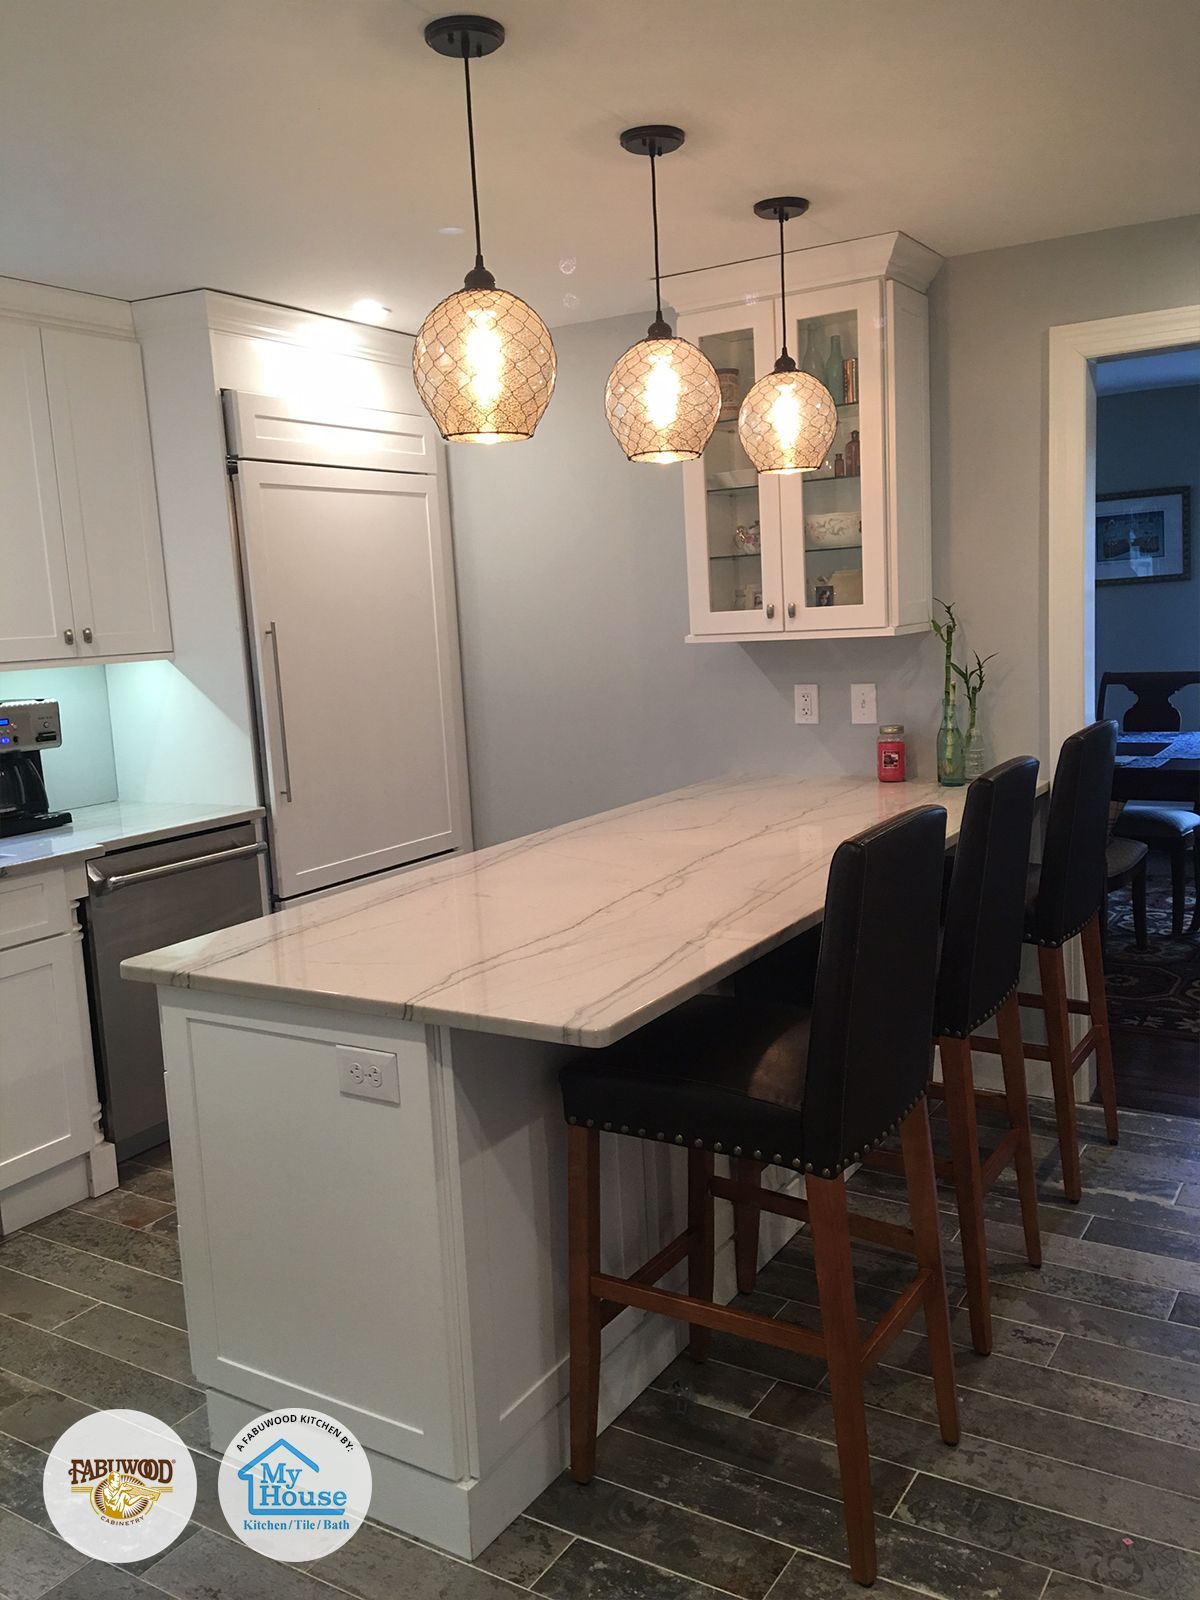 From The Beautiful Lighting To The Spectacular Backsplash My House Kitchen Tile Bath Located In Union N Kitchen Cabinetry Fabuwood Cabinets Home Kitchens